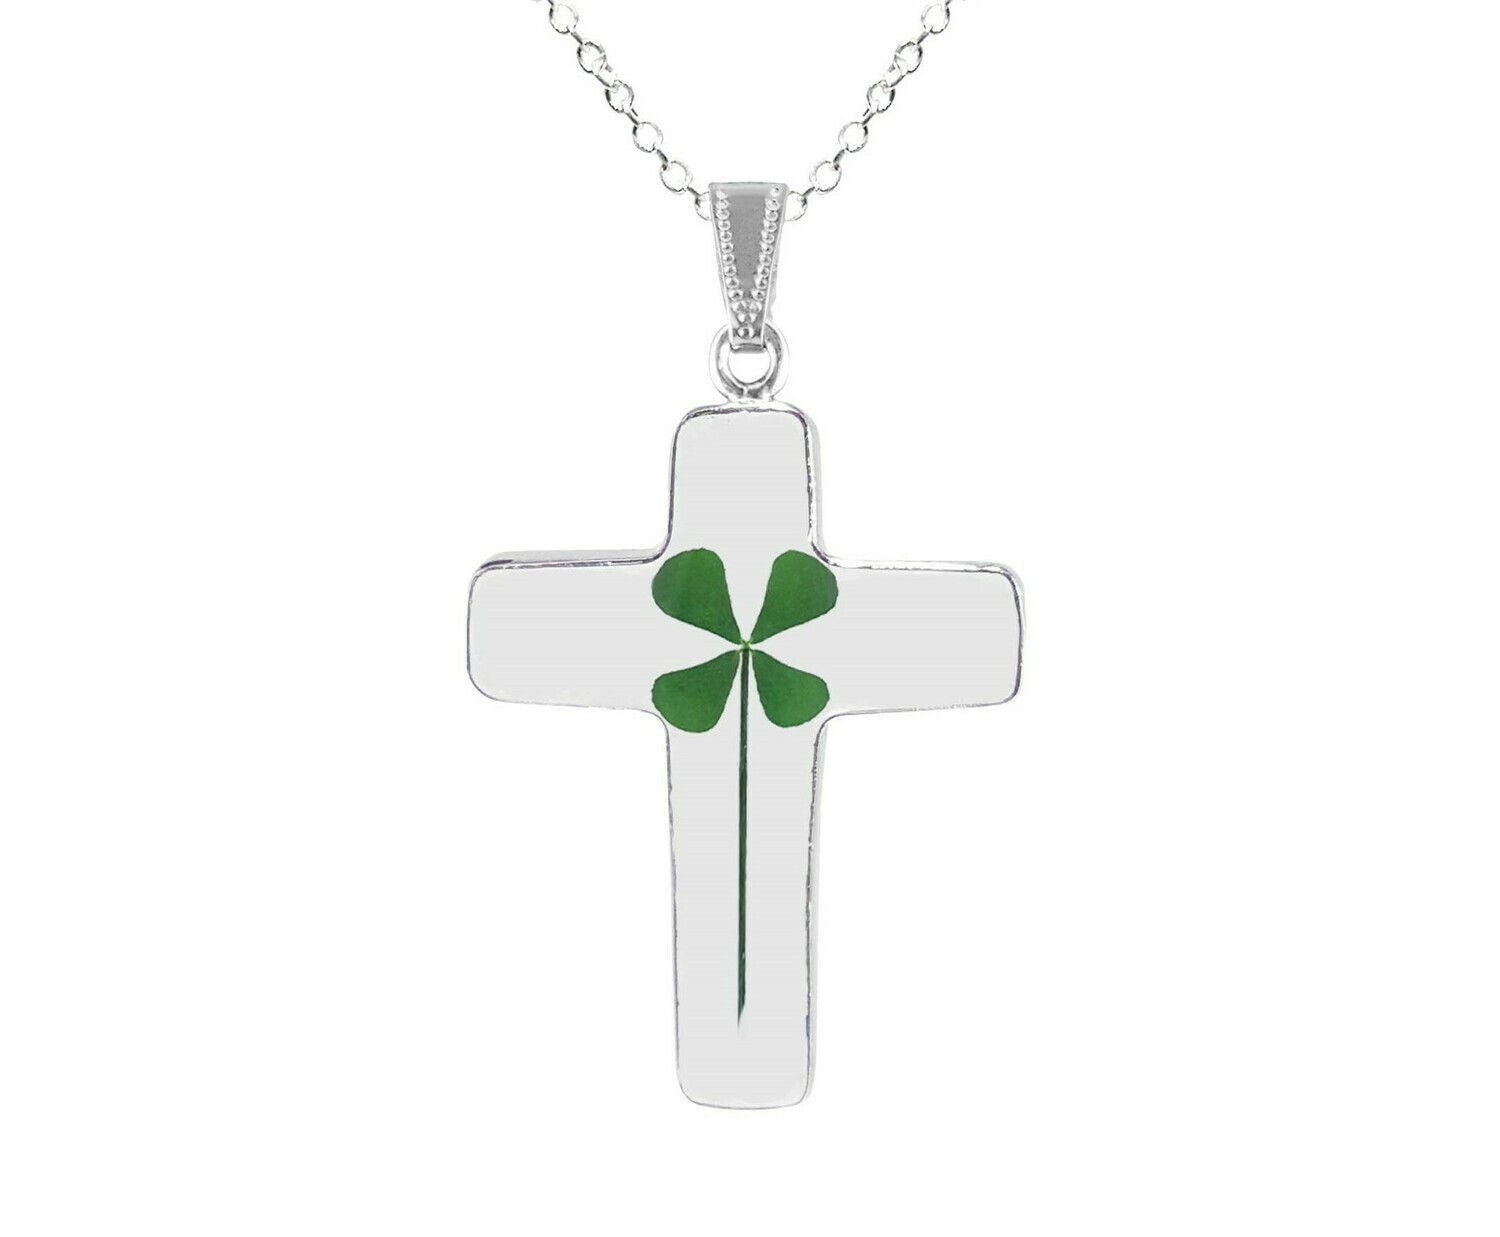 Clover Necklace, Large Cross, Transparent.